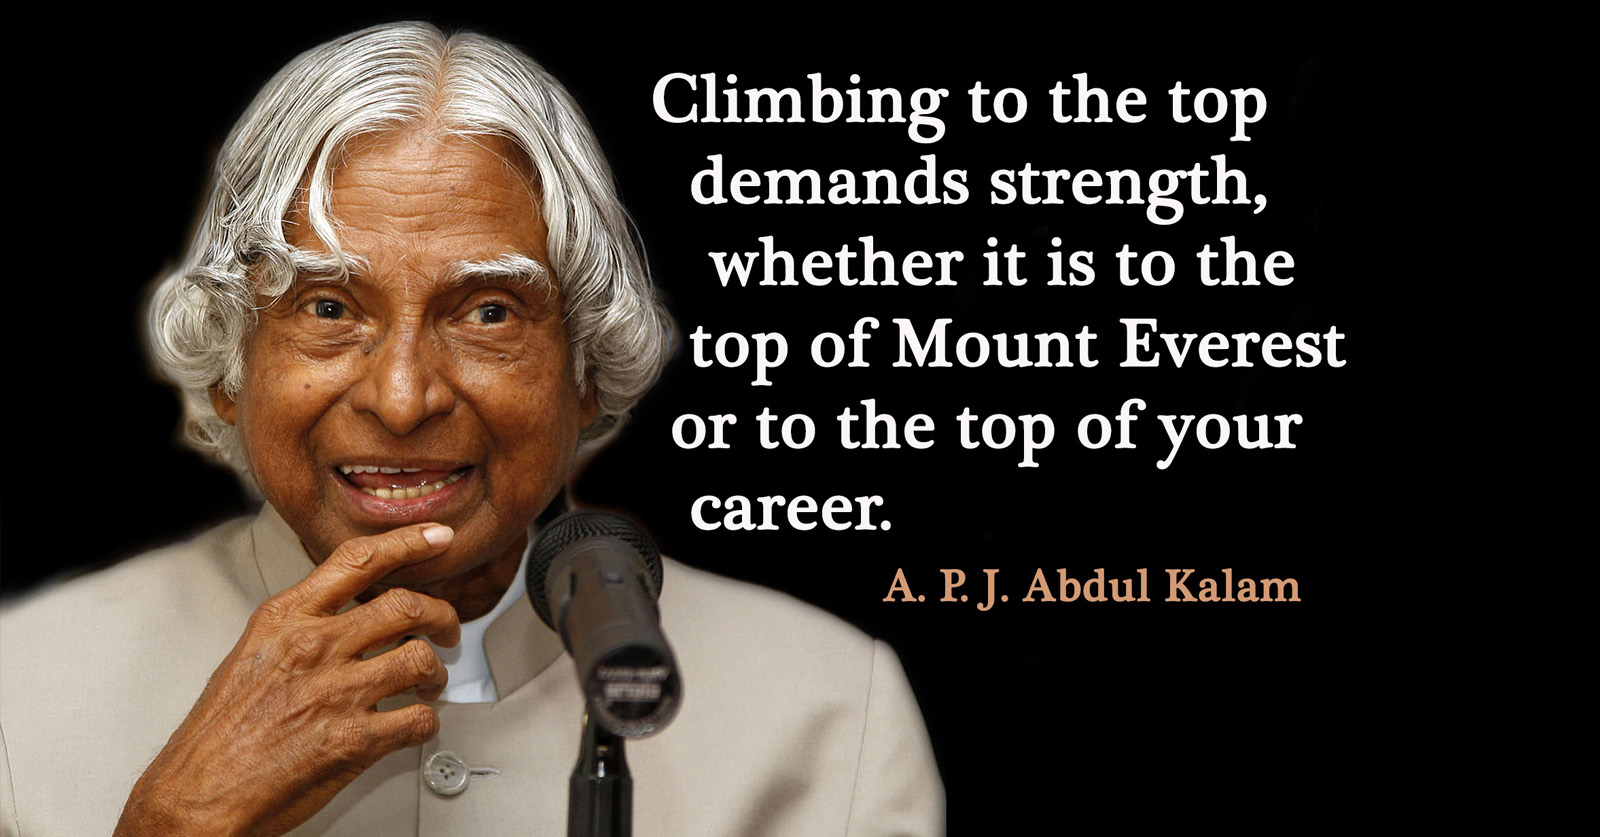 looking for job within country by dr kalam A p j abdul kalam's vision for a better, richer world in 2030  a world in which  every nation is able to give a clean, green environment to all.